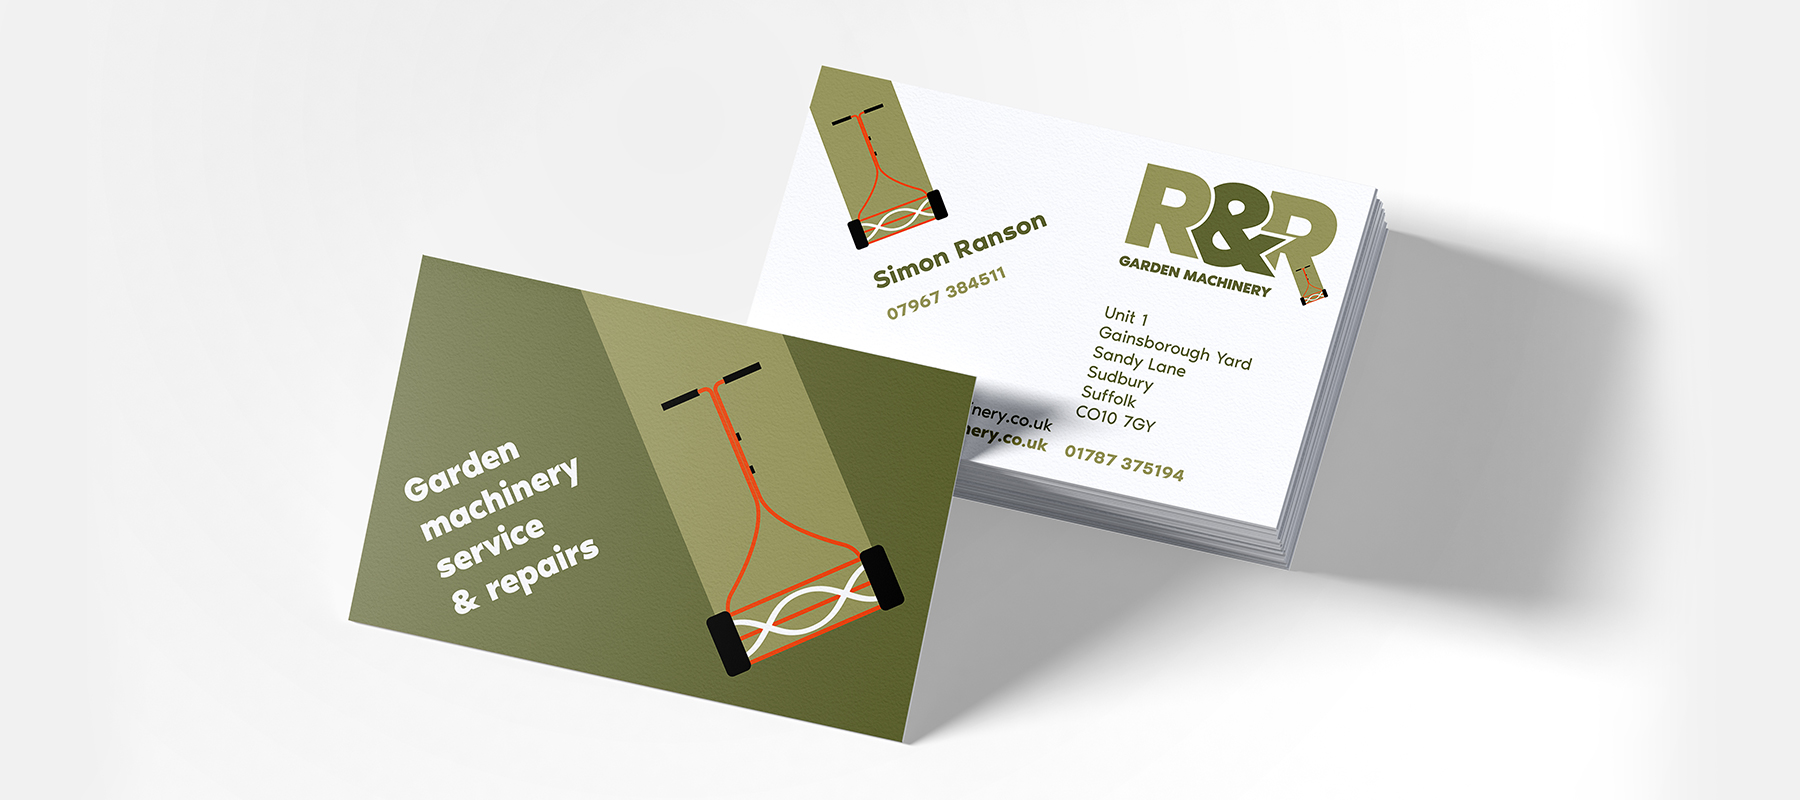 R&R Garden Machinery, Business Cards, Indigoross, Sudbury, Suffolk